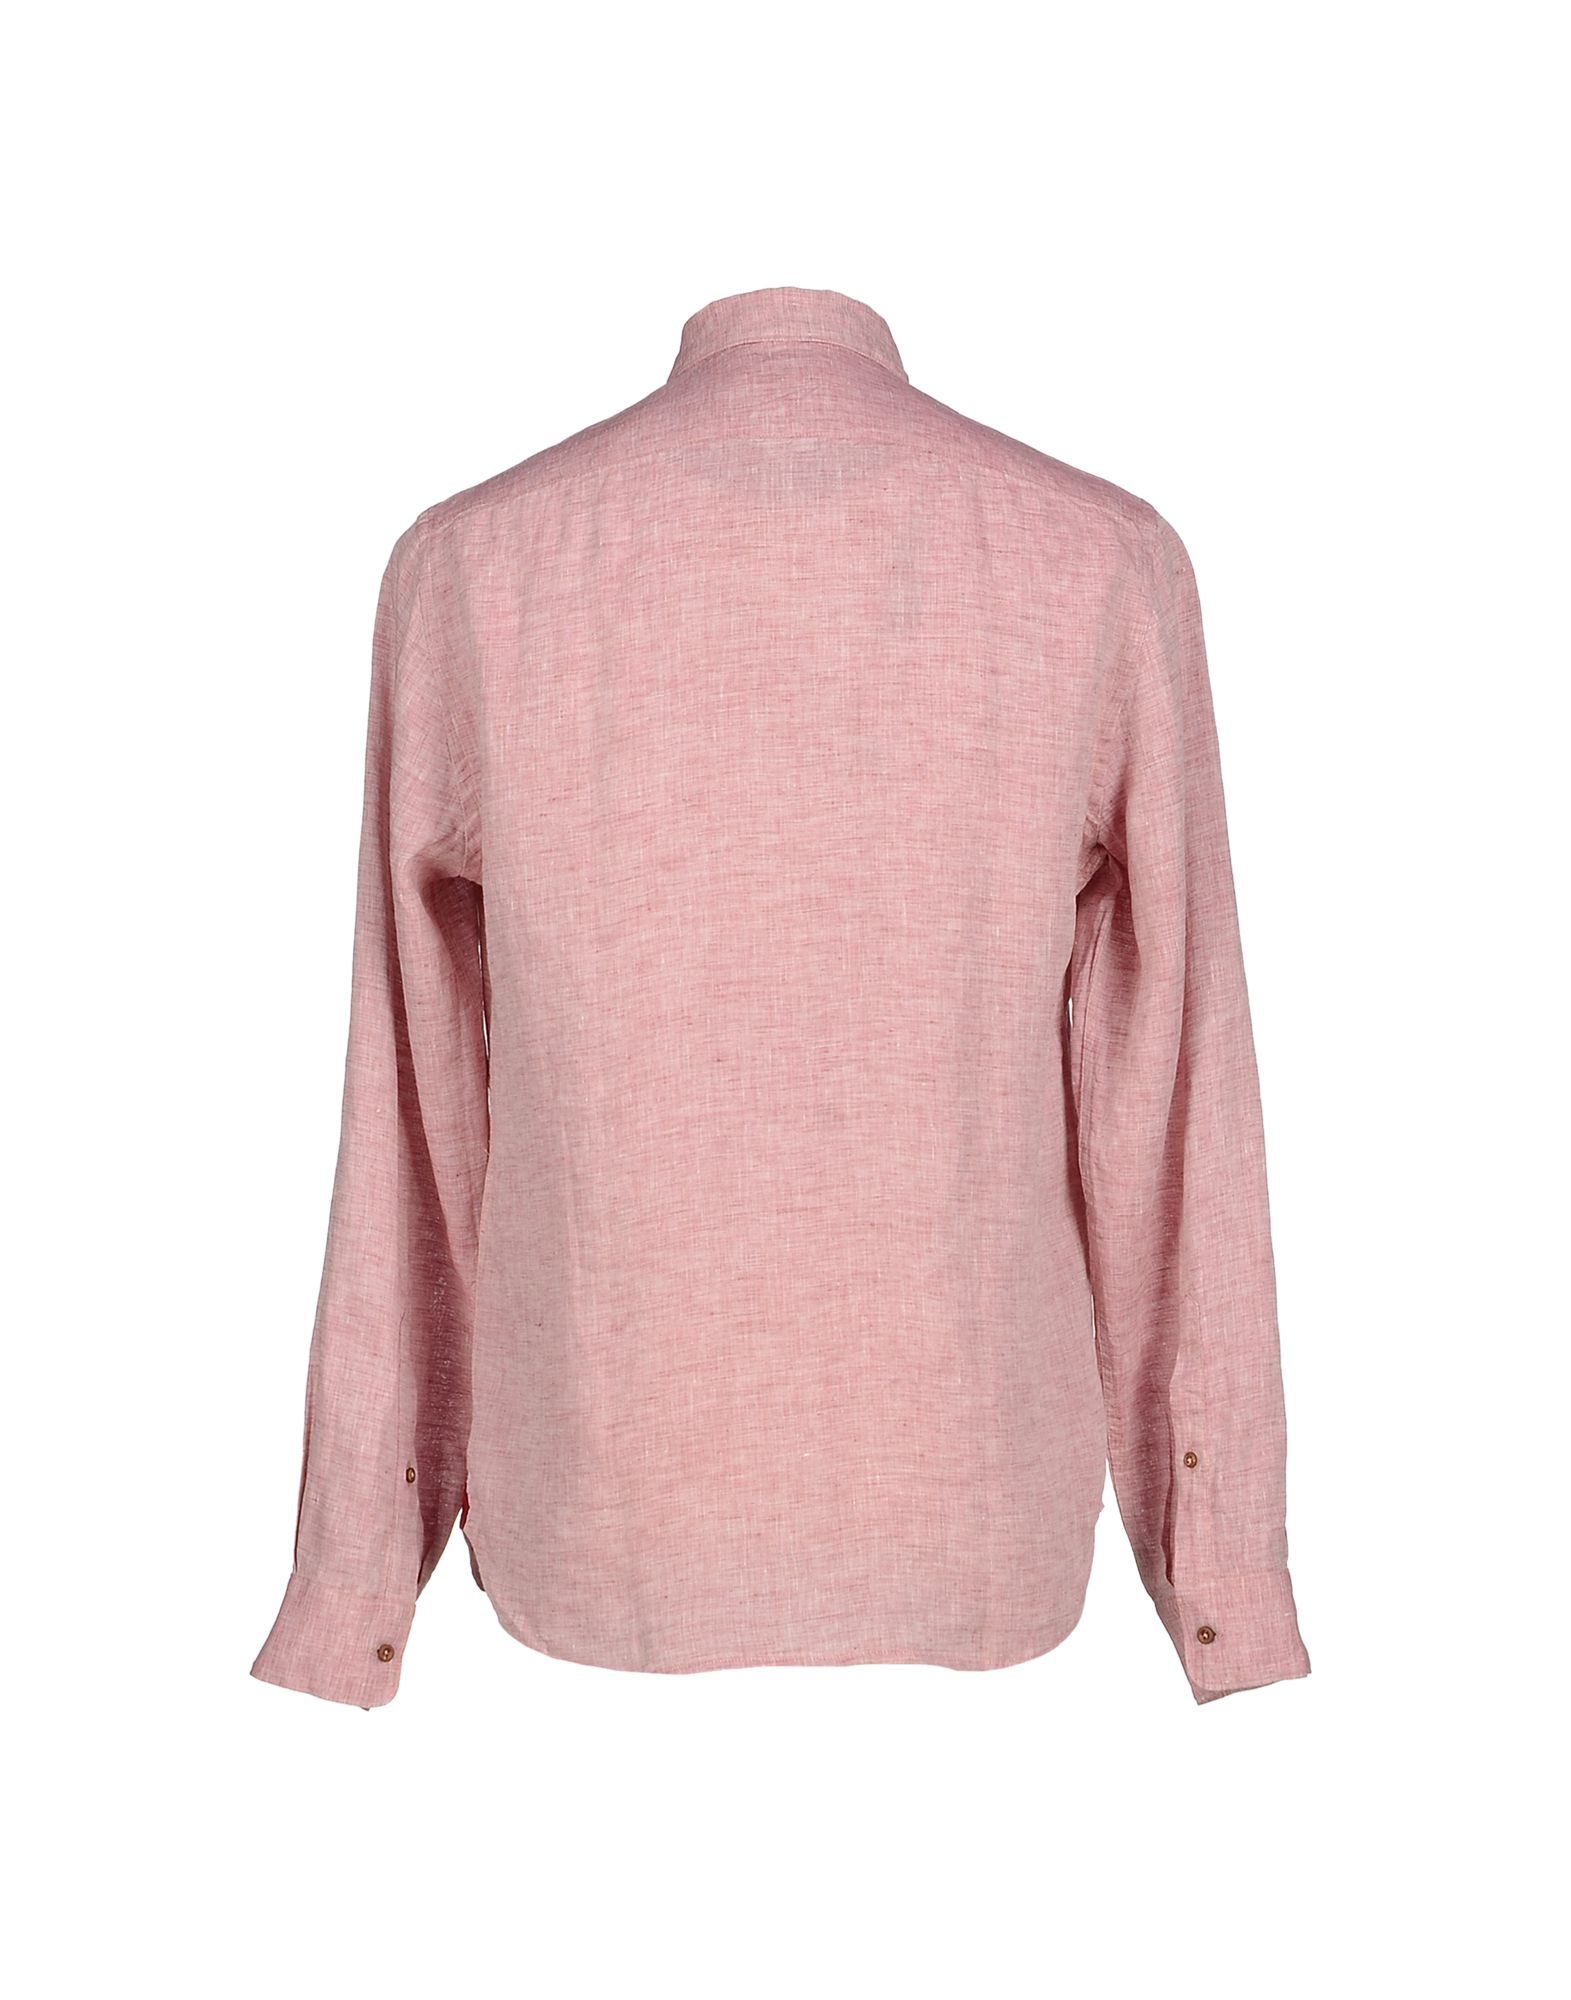 C P Company Shirt In Pink For Men Lyst